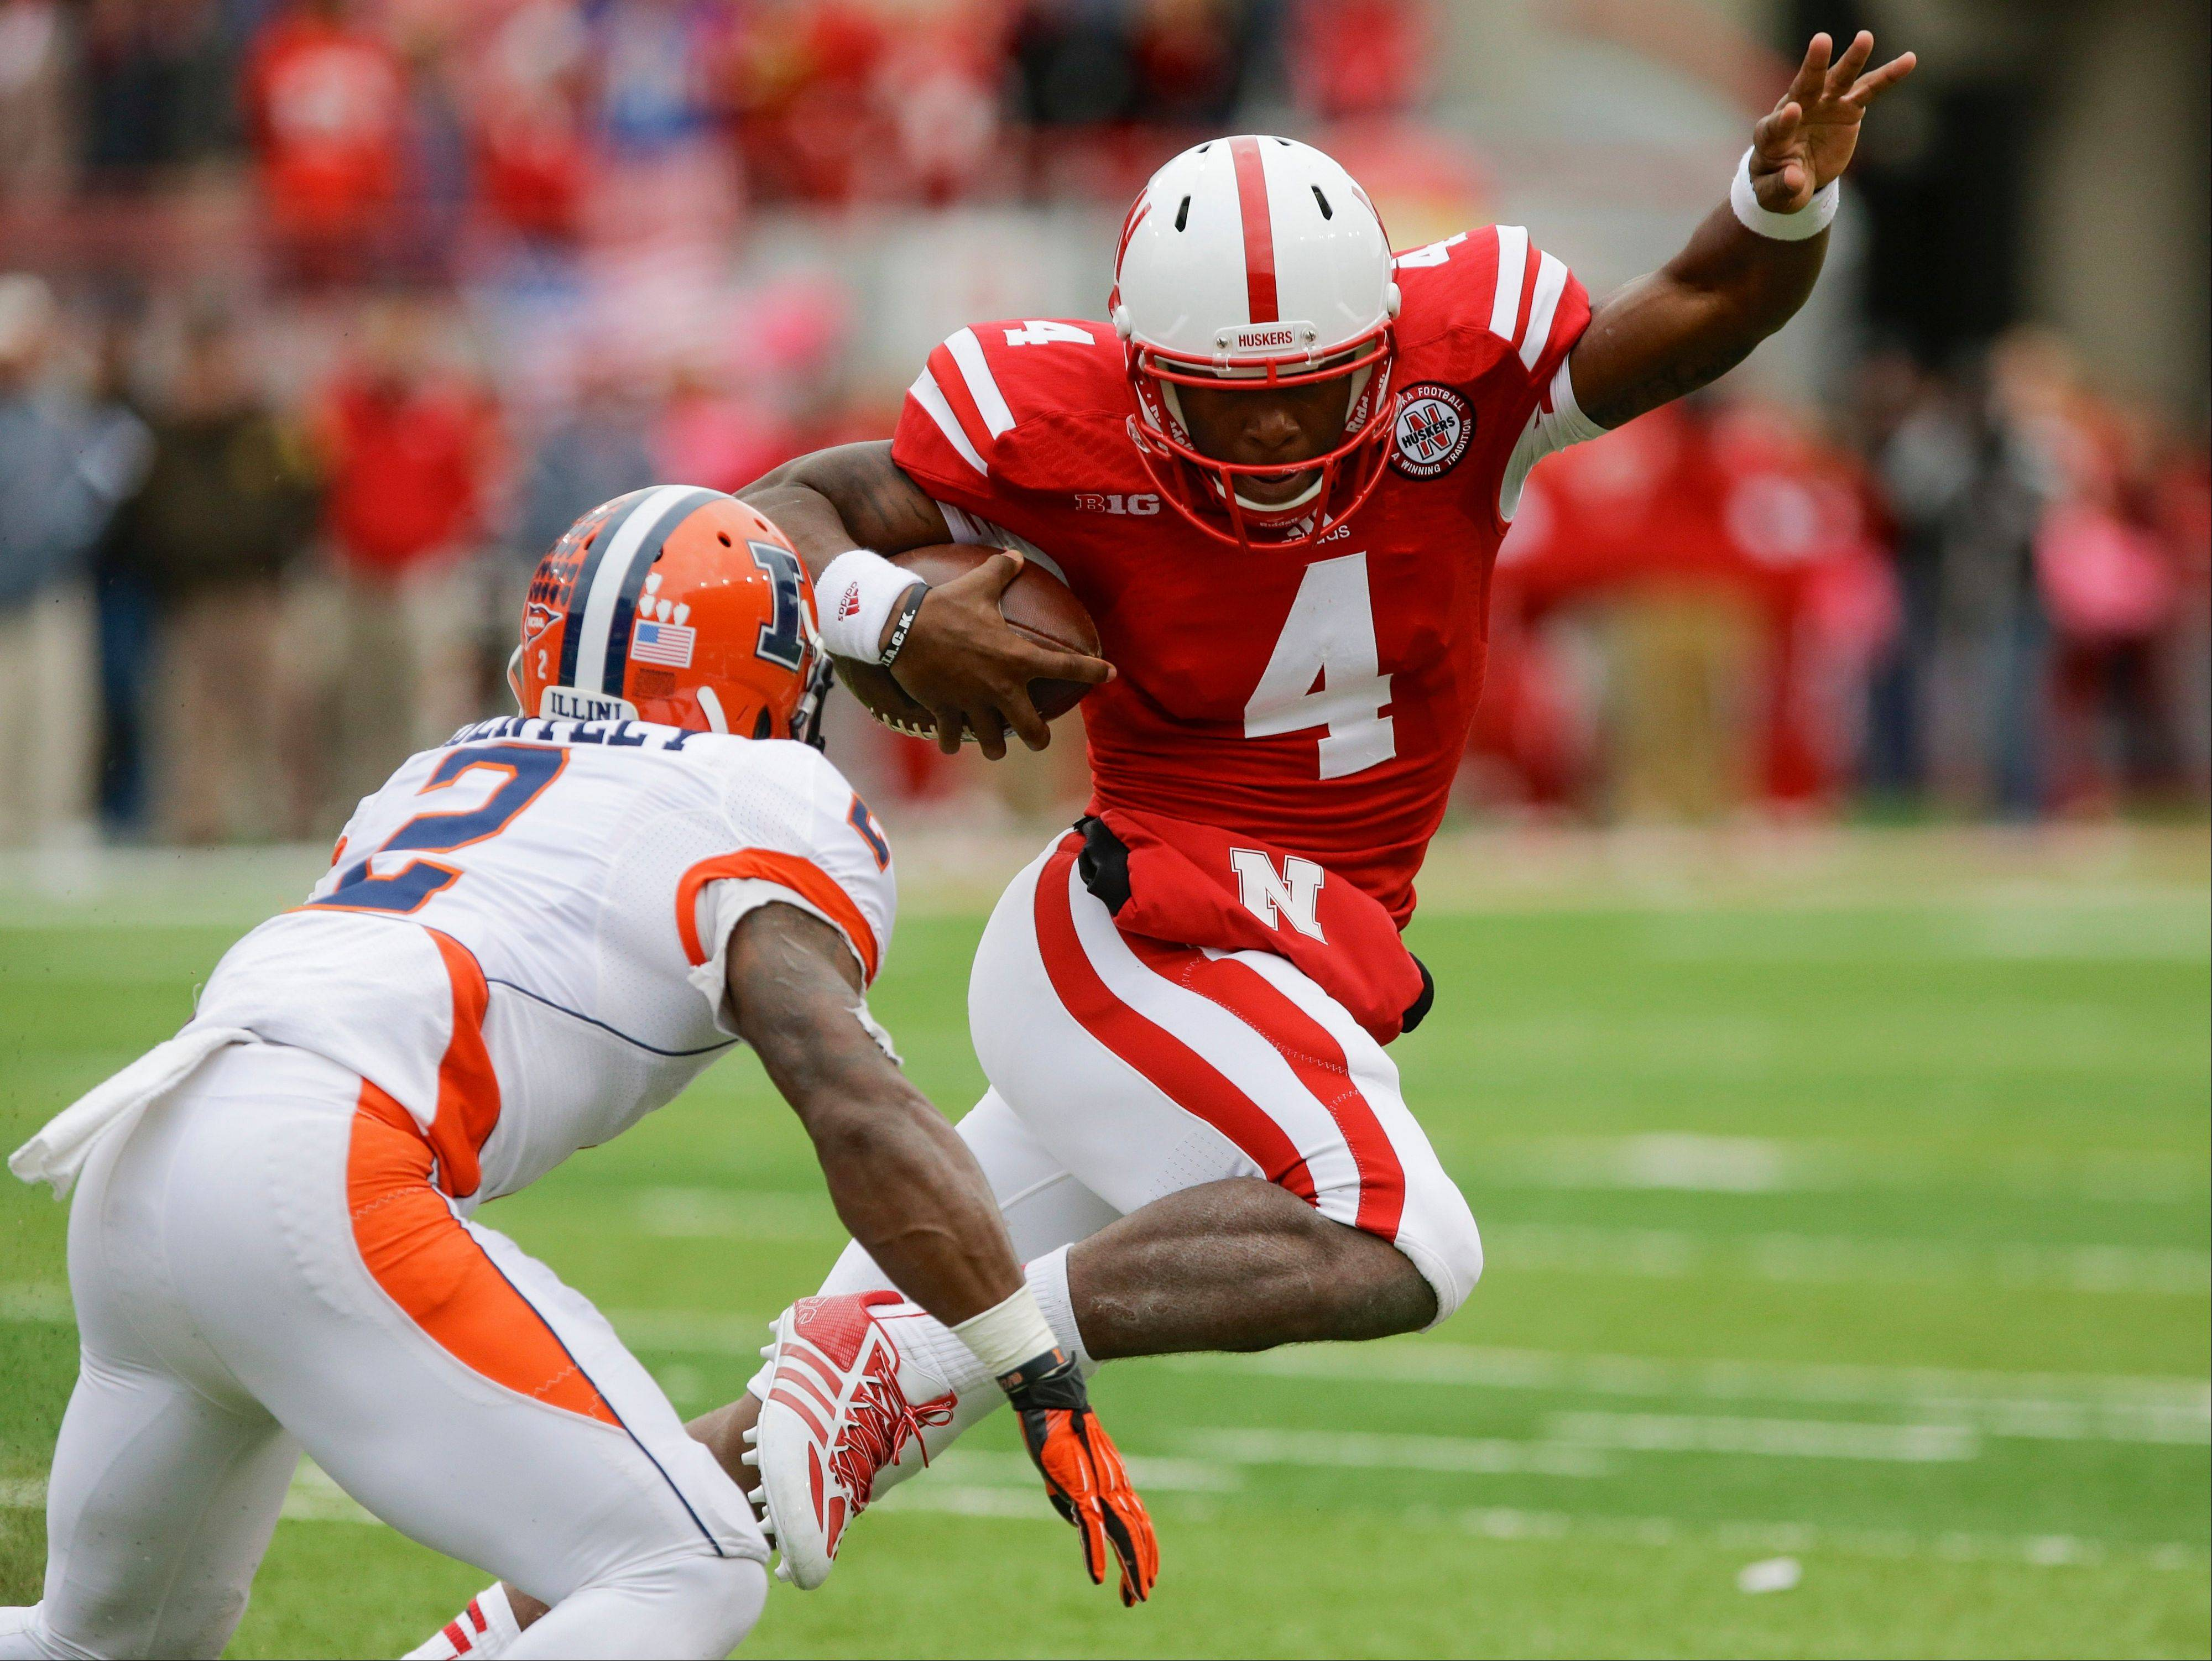 Nebraska quarterback Tommy Armstrong Jr. tries to outrun Illinois defensive back V'Angelo Bentley in the second half of Saturday's game in Lincoln, Neb. Tackling was an issue for the Illini in the 39-19 loss.